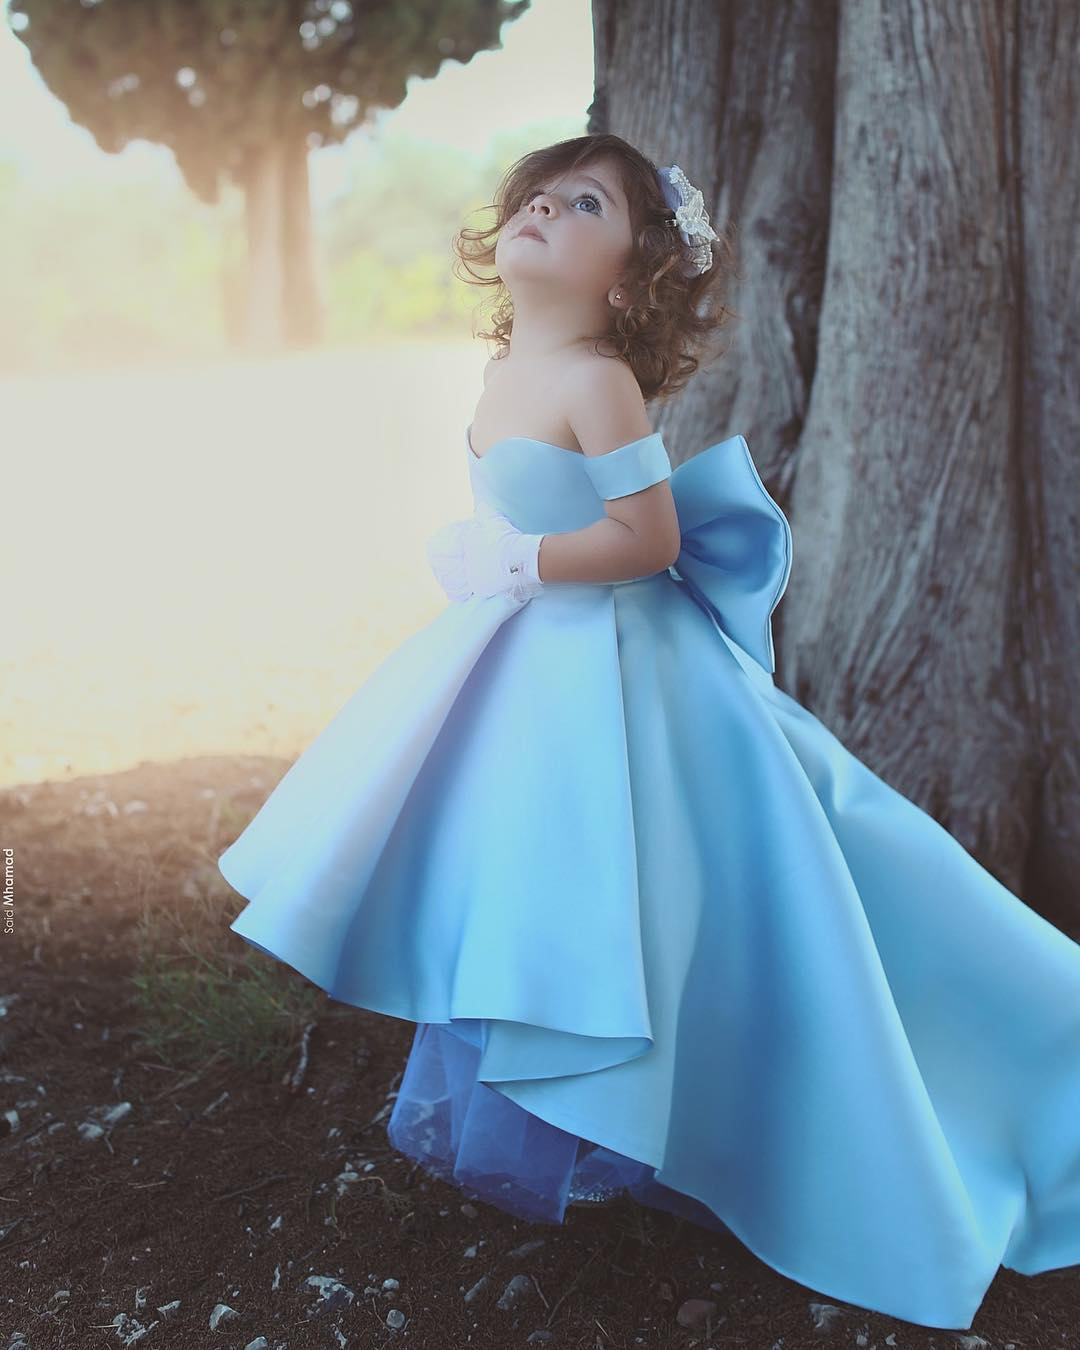 Flower Girl Dress 2018, Princess Blue Off the Shoulder High Low Flower Girl Dresses Ball Gowns Child Pageant Dresses Long Train Little Kids Wedding Party Gowns, FLD15